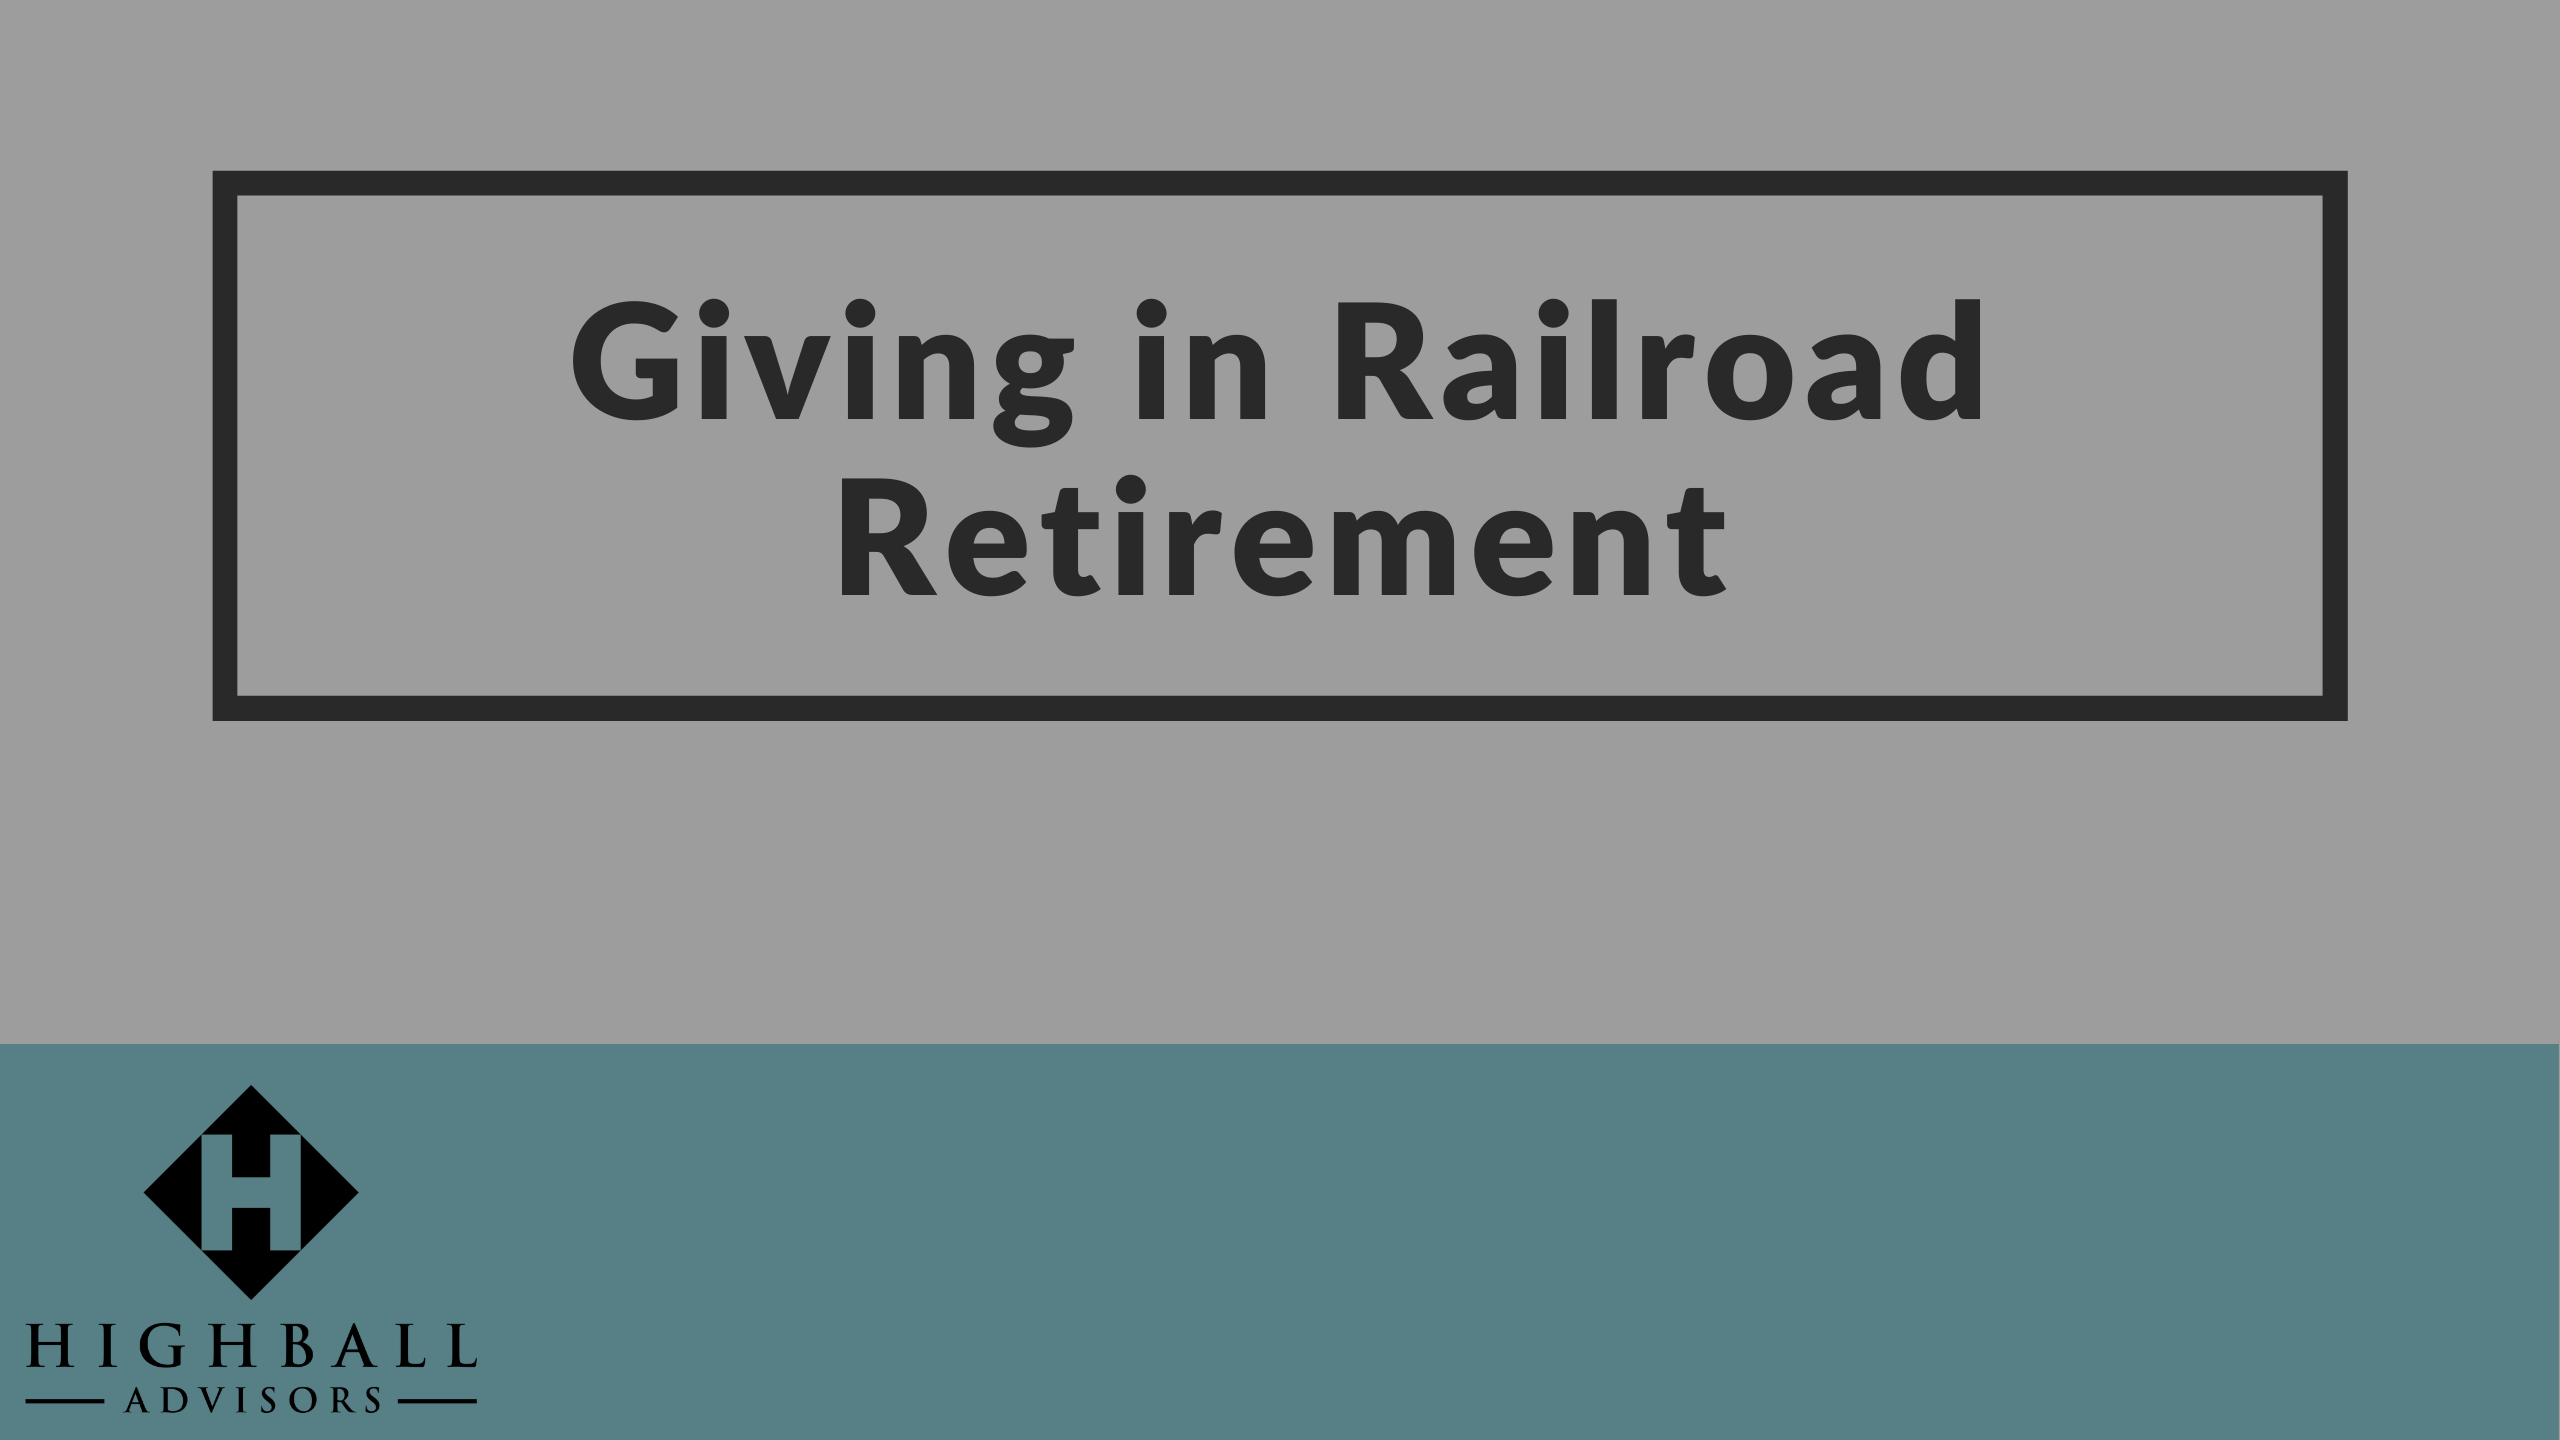 Giving in Railroad Retirement Thumbnail